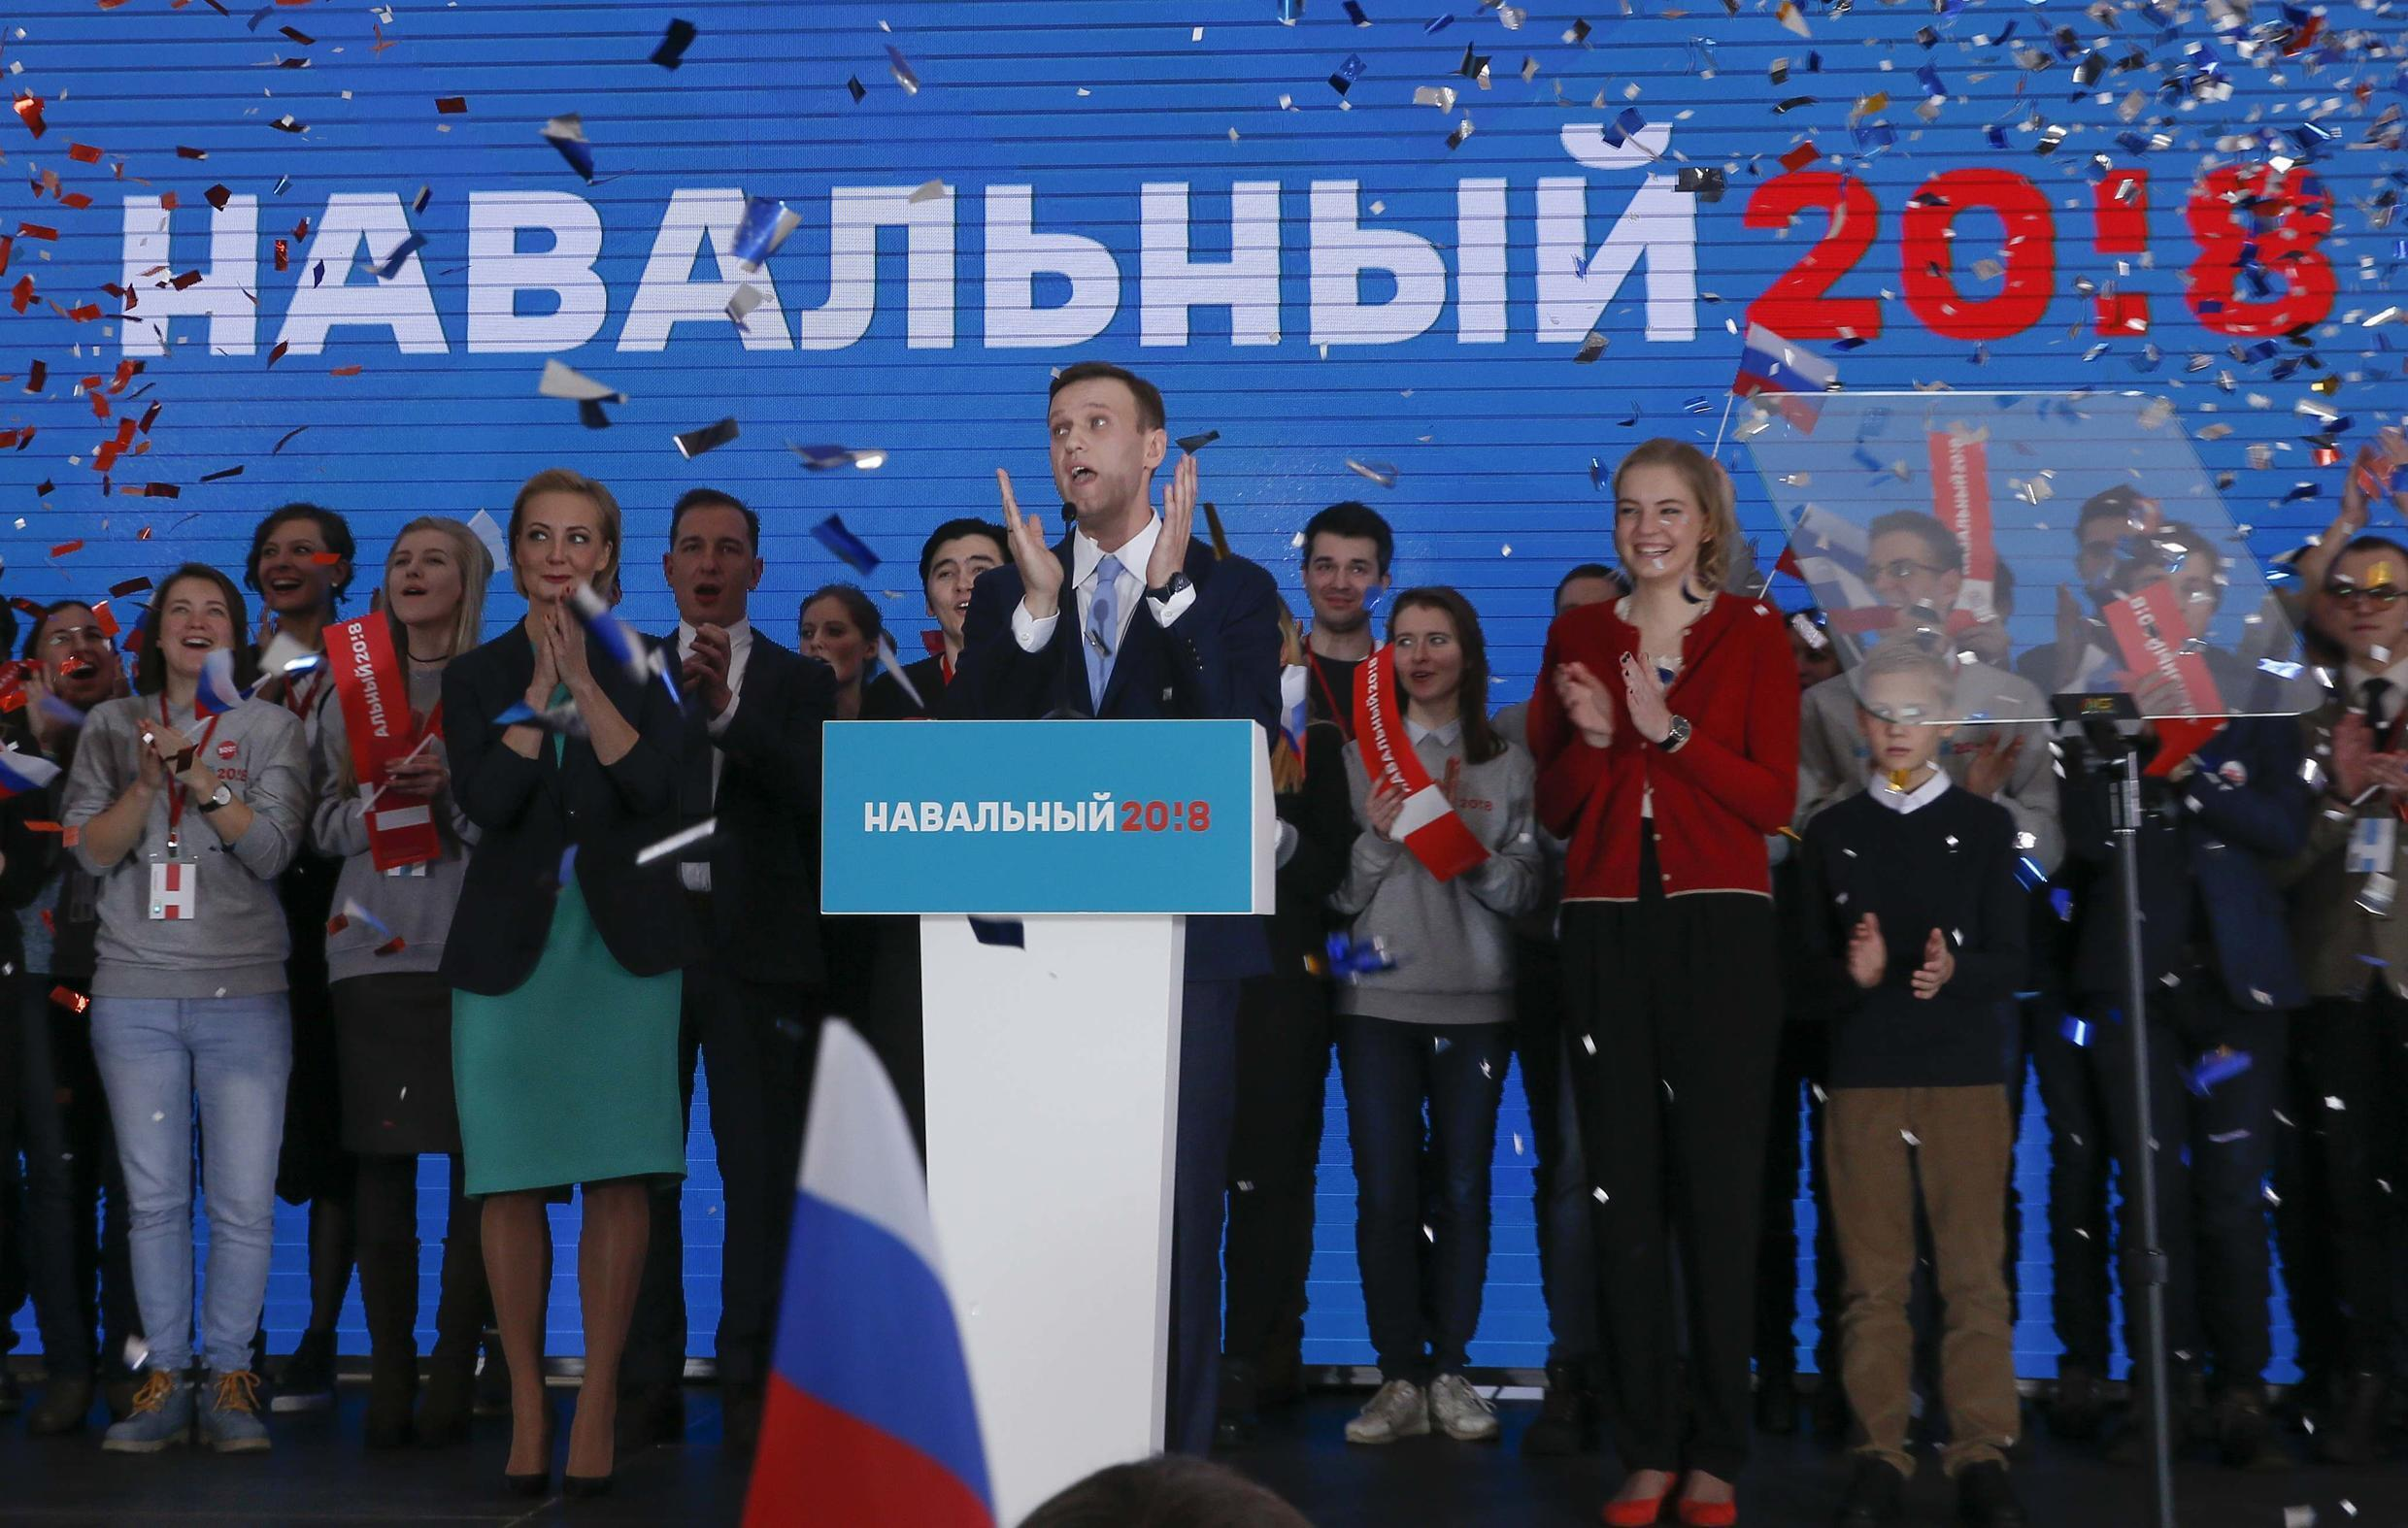 Russian opposition leader Alexei Navalny at meeting in Moscow to uphold his presidential bid, 24 December 2017.